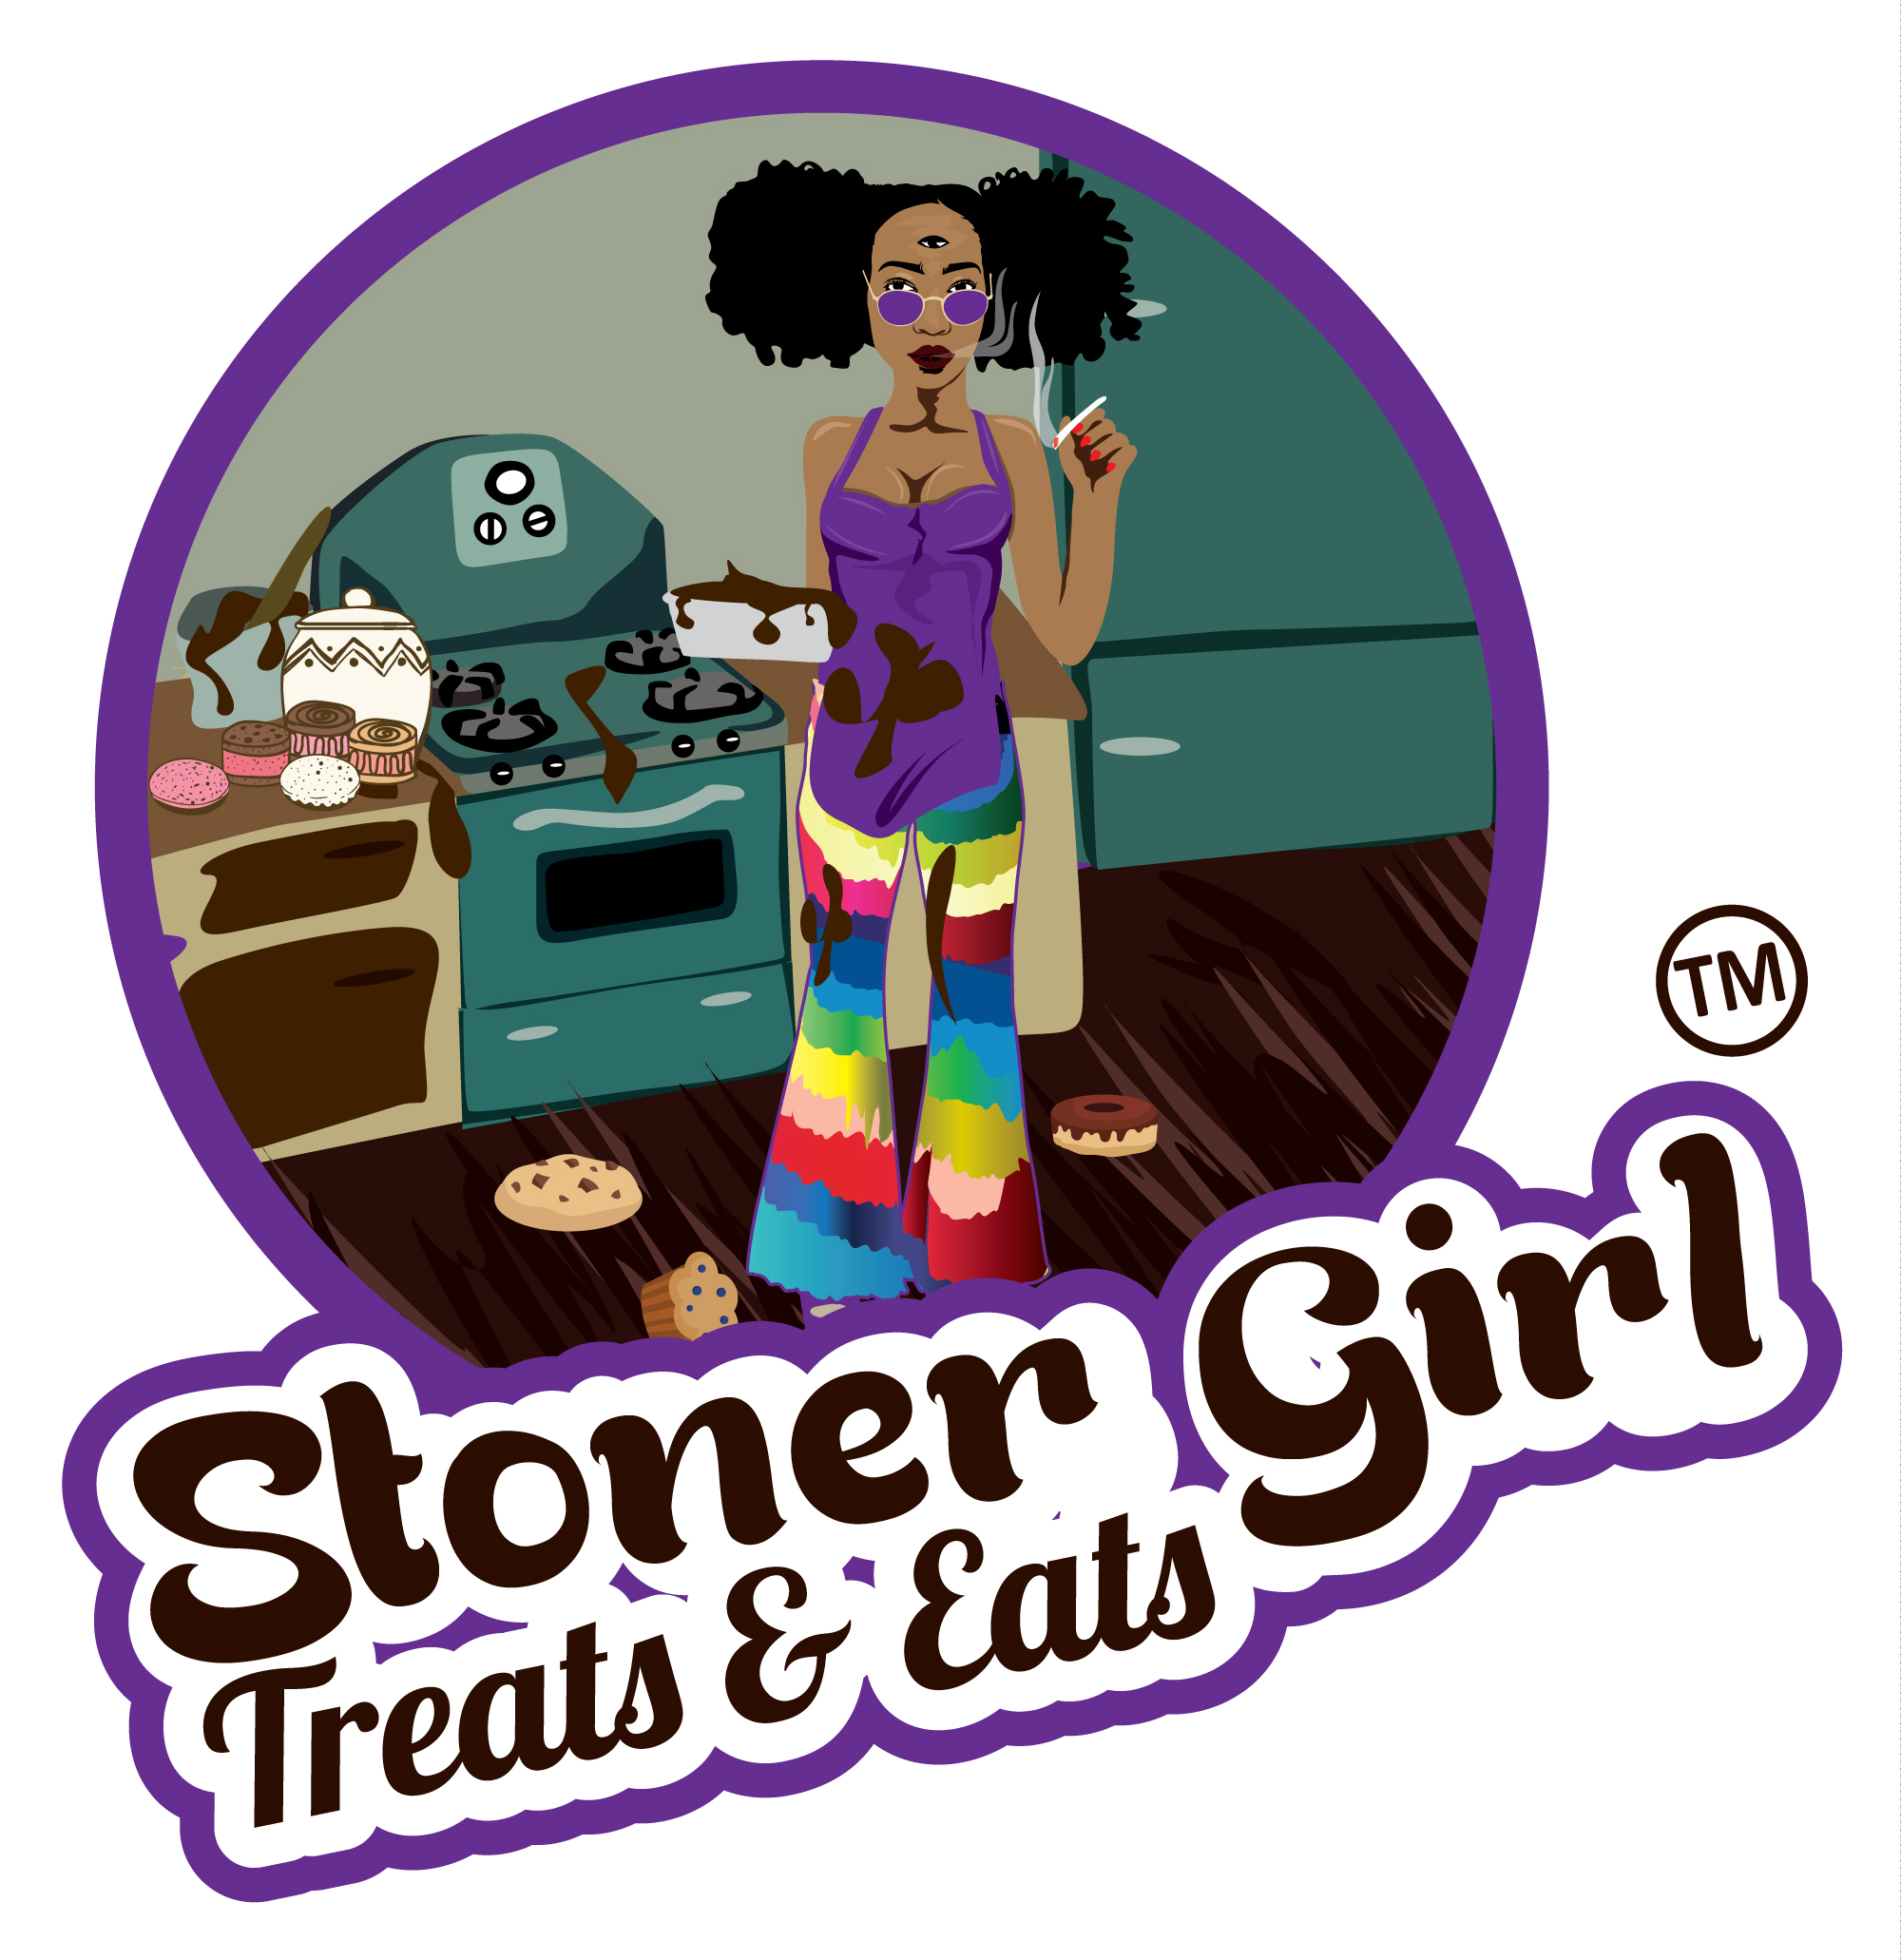 Stoner Girl Treats & Eats